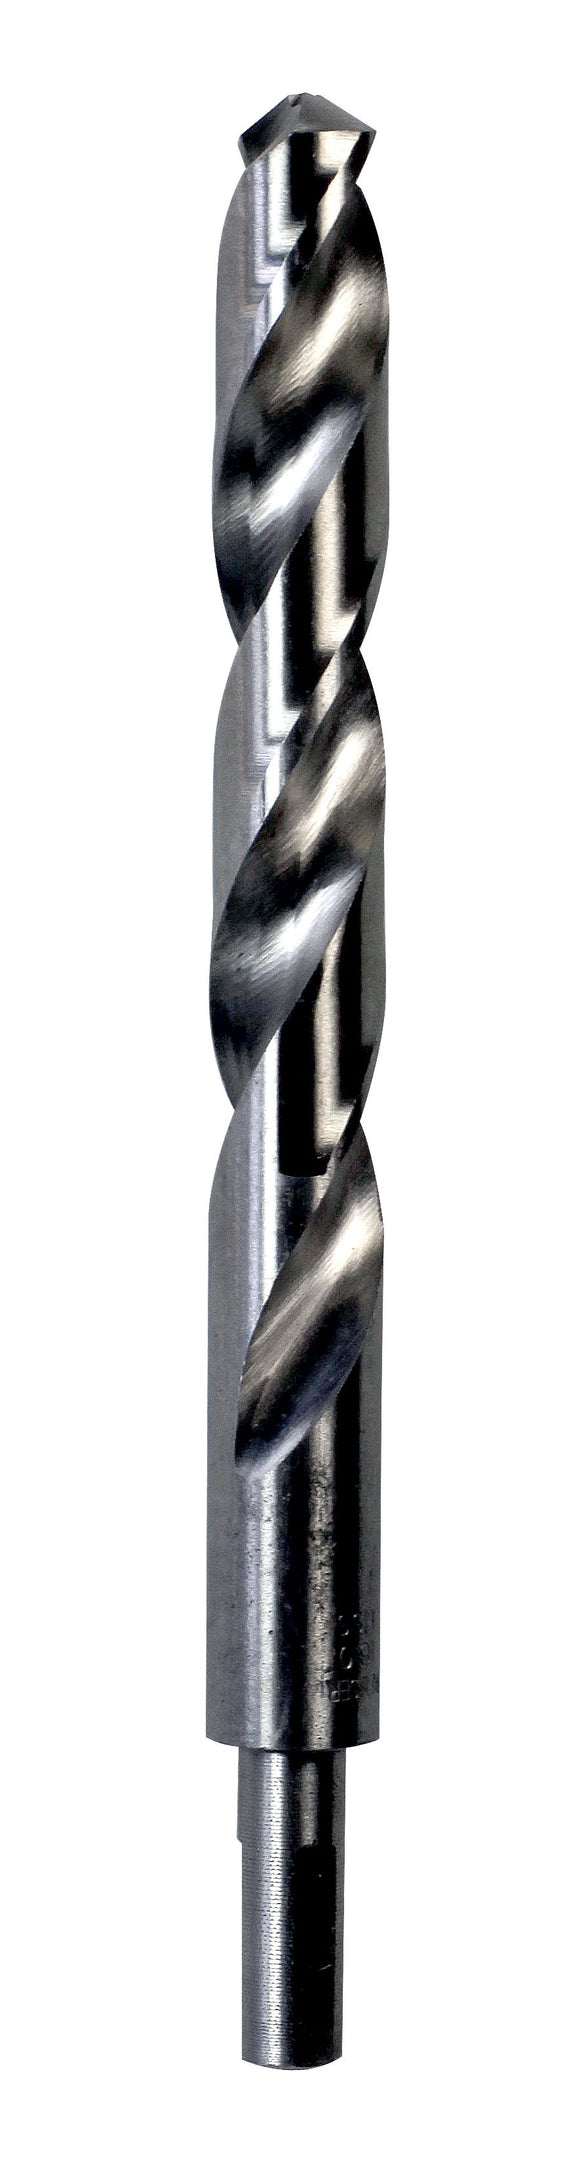 REISSER HSS BLACKSMITH DRILL BIT  15.0 x 169mm